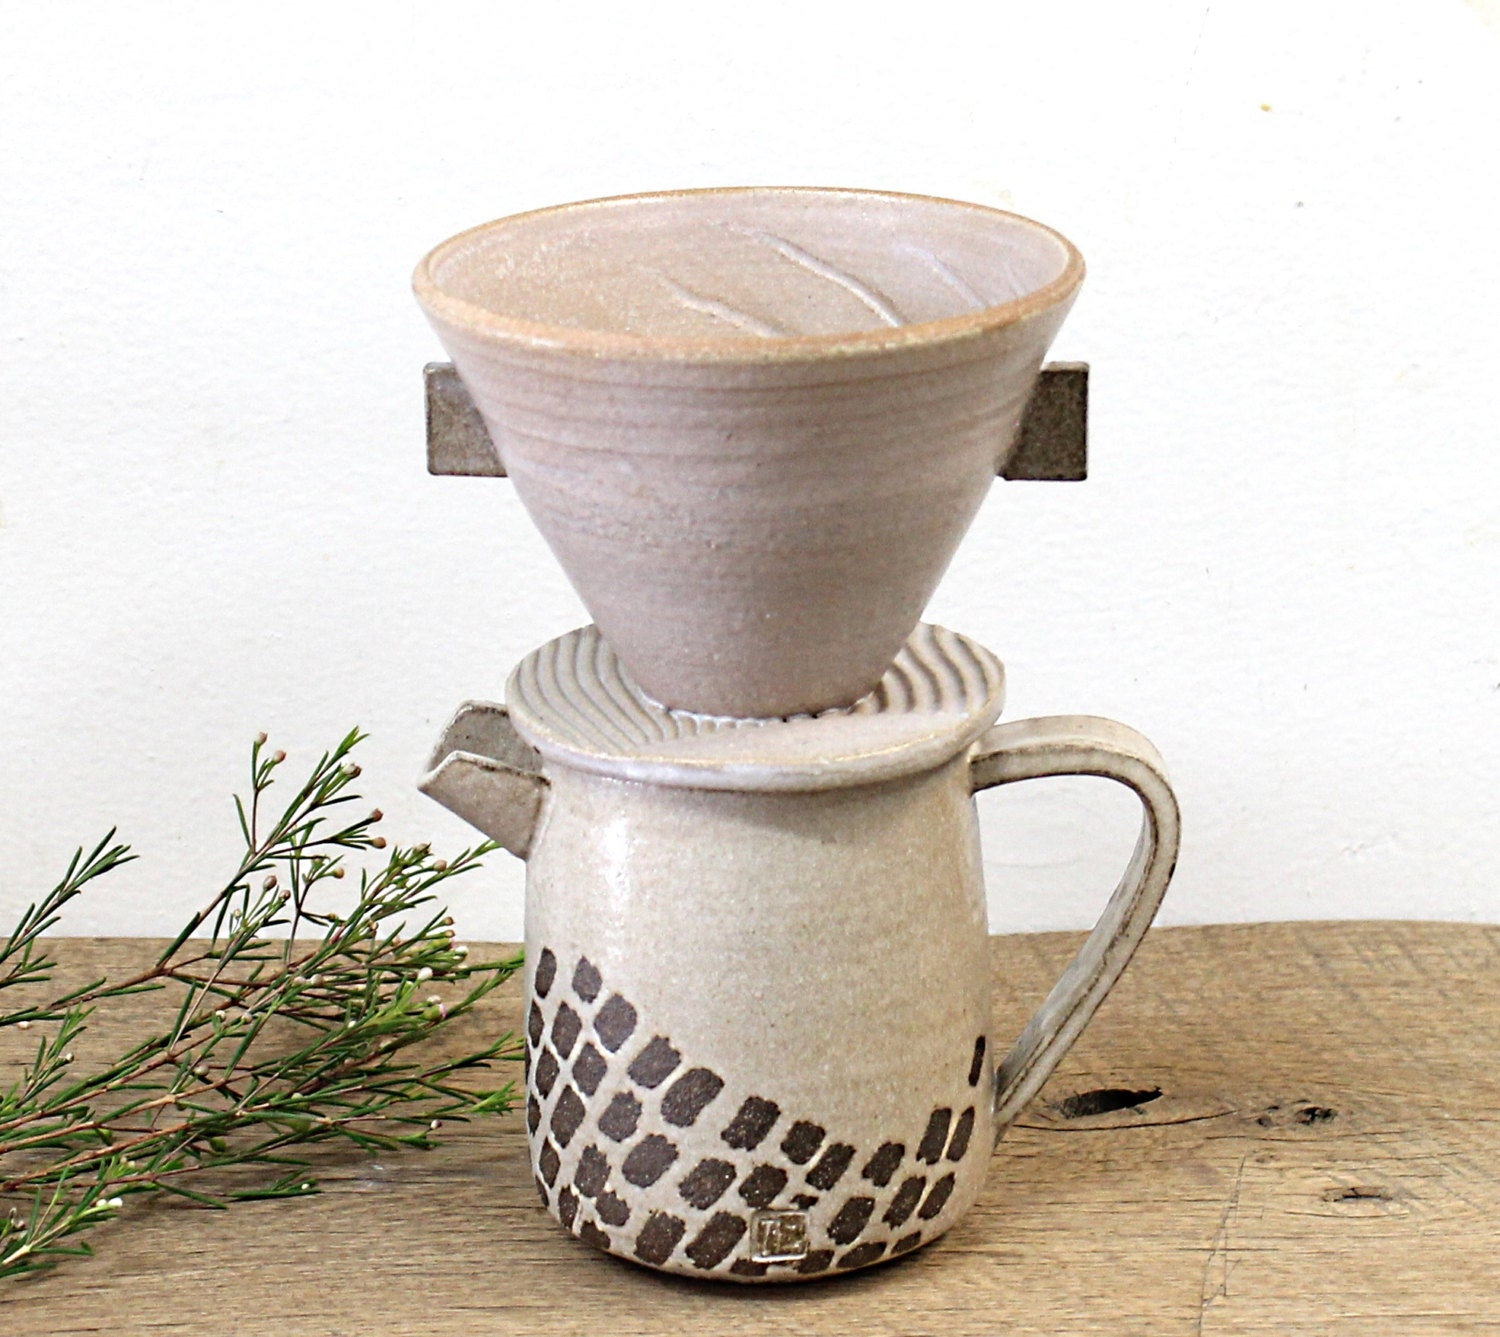 Pottery Coffee Maker Handmade Coffee Dripper Pour-over